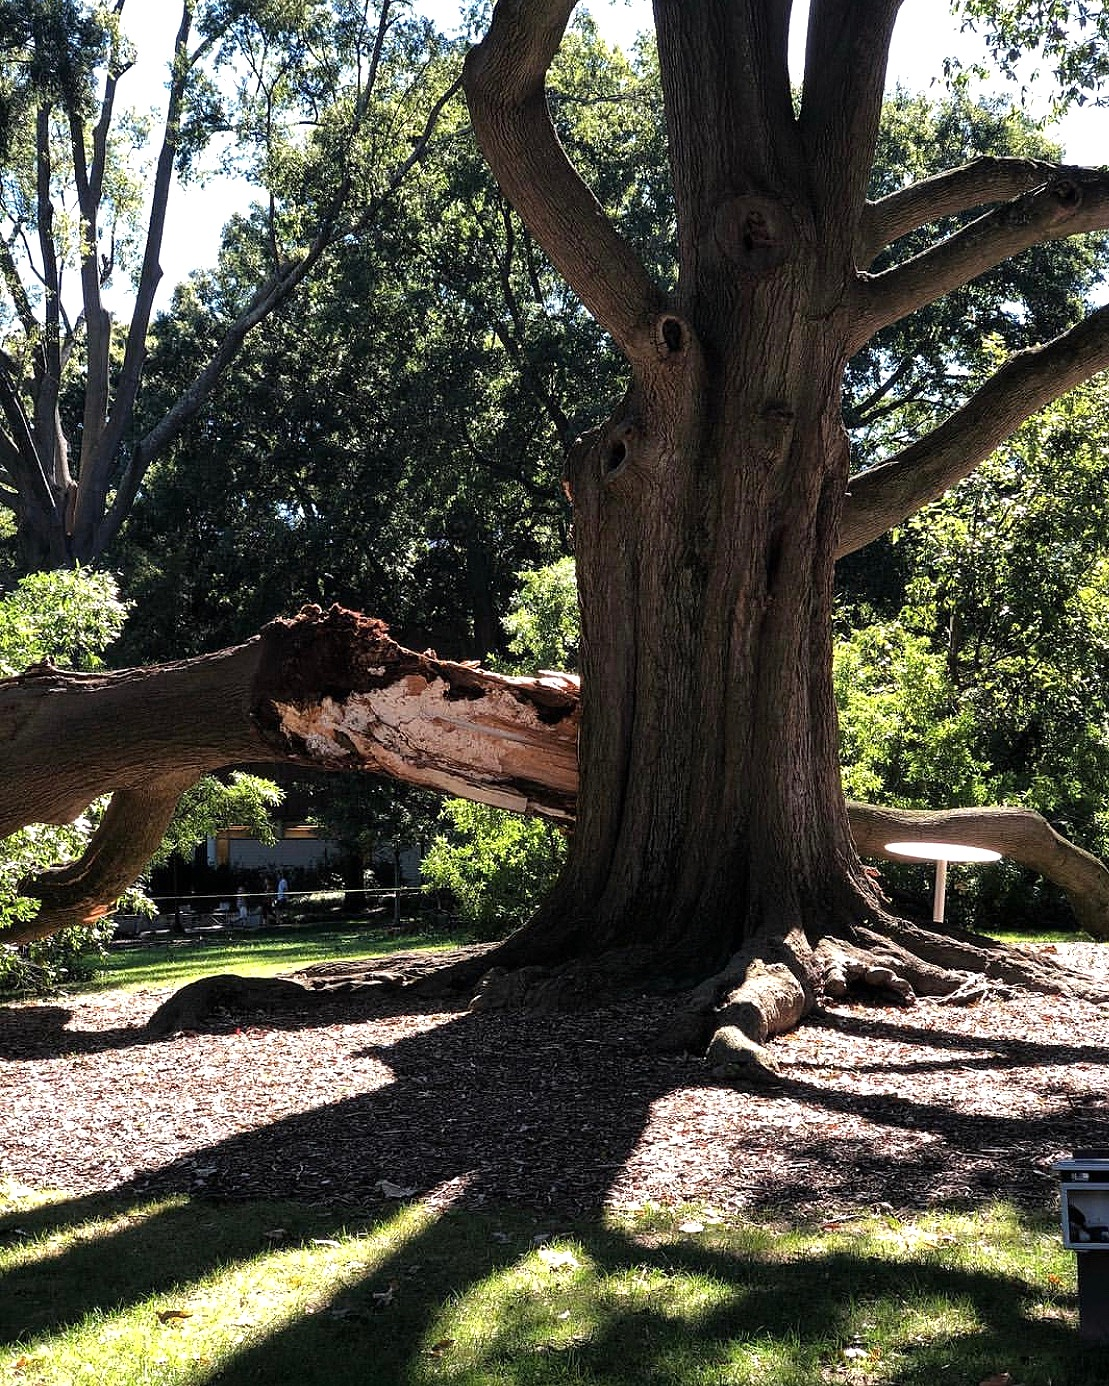 A grand oak unfortunately came down in one of Georgia Tech's courtyards due to Atlanta's storm season. This tree was one of the oldest on campus. Students and alumni came together on social platform, Instagram, and facilitated Eutree partnering with the University to give this beloved tree a second life.